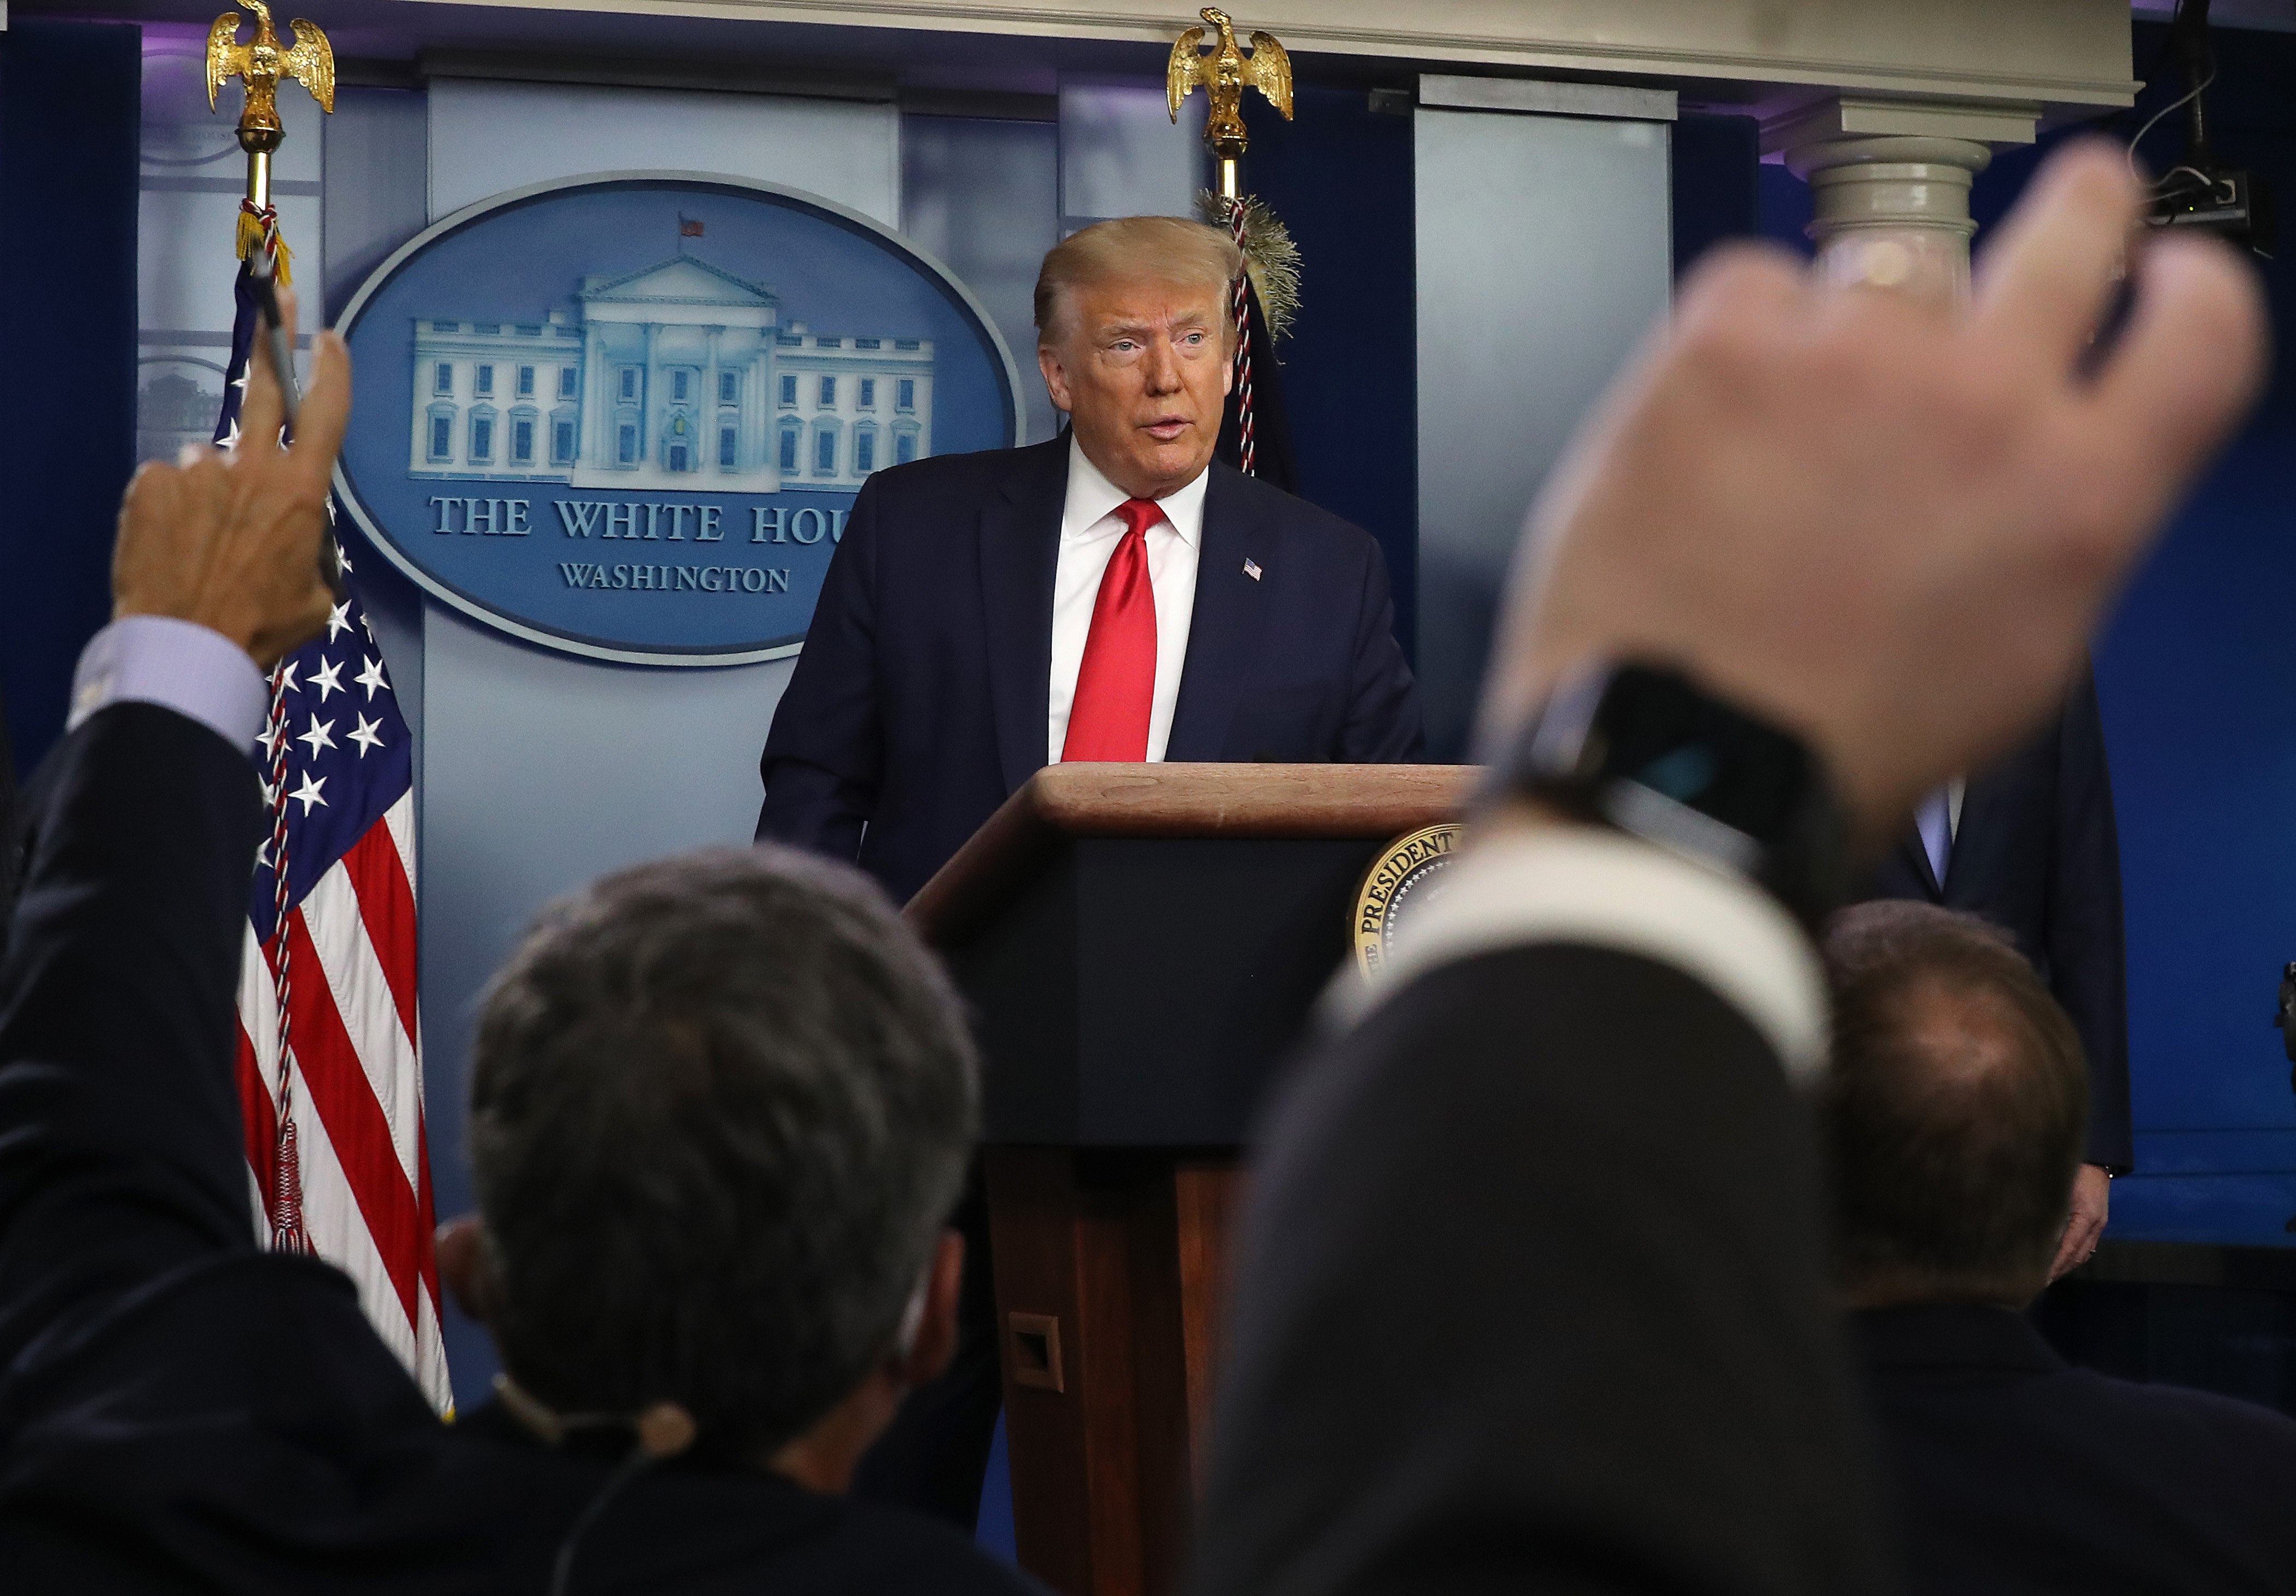 U.S. President Donald Trump speaks to the media in the briefing room at the White House on July 2, 2020 in Washington, DC. (Chip Somodevilla/Getty Images)